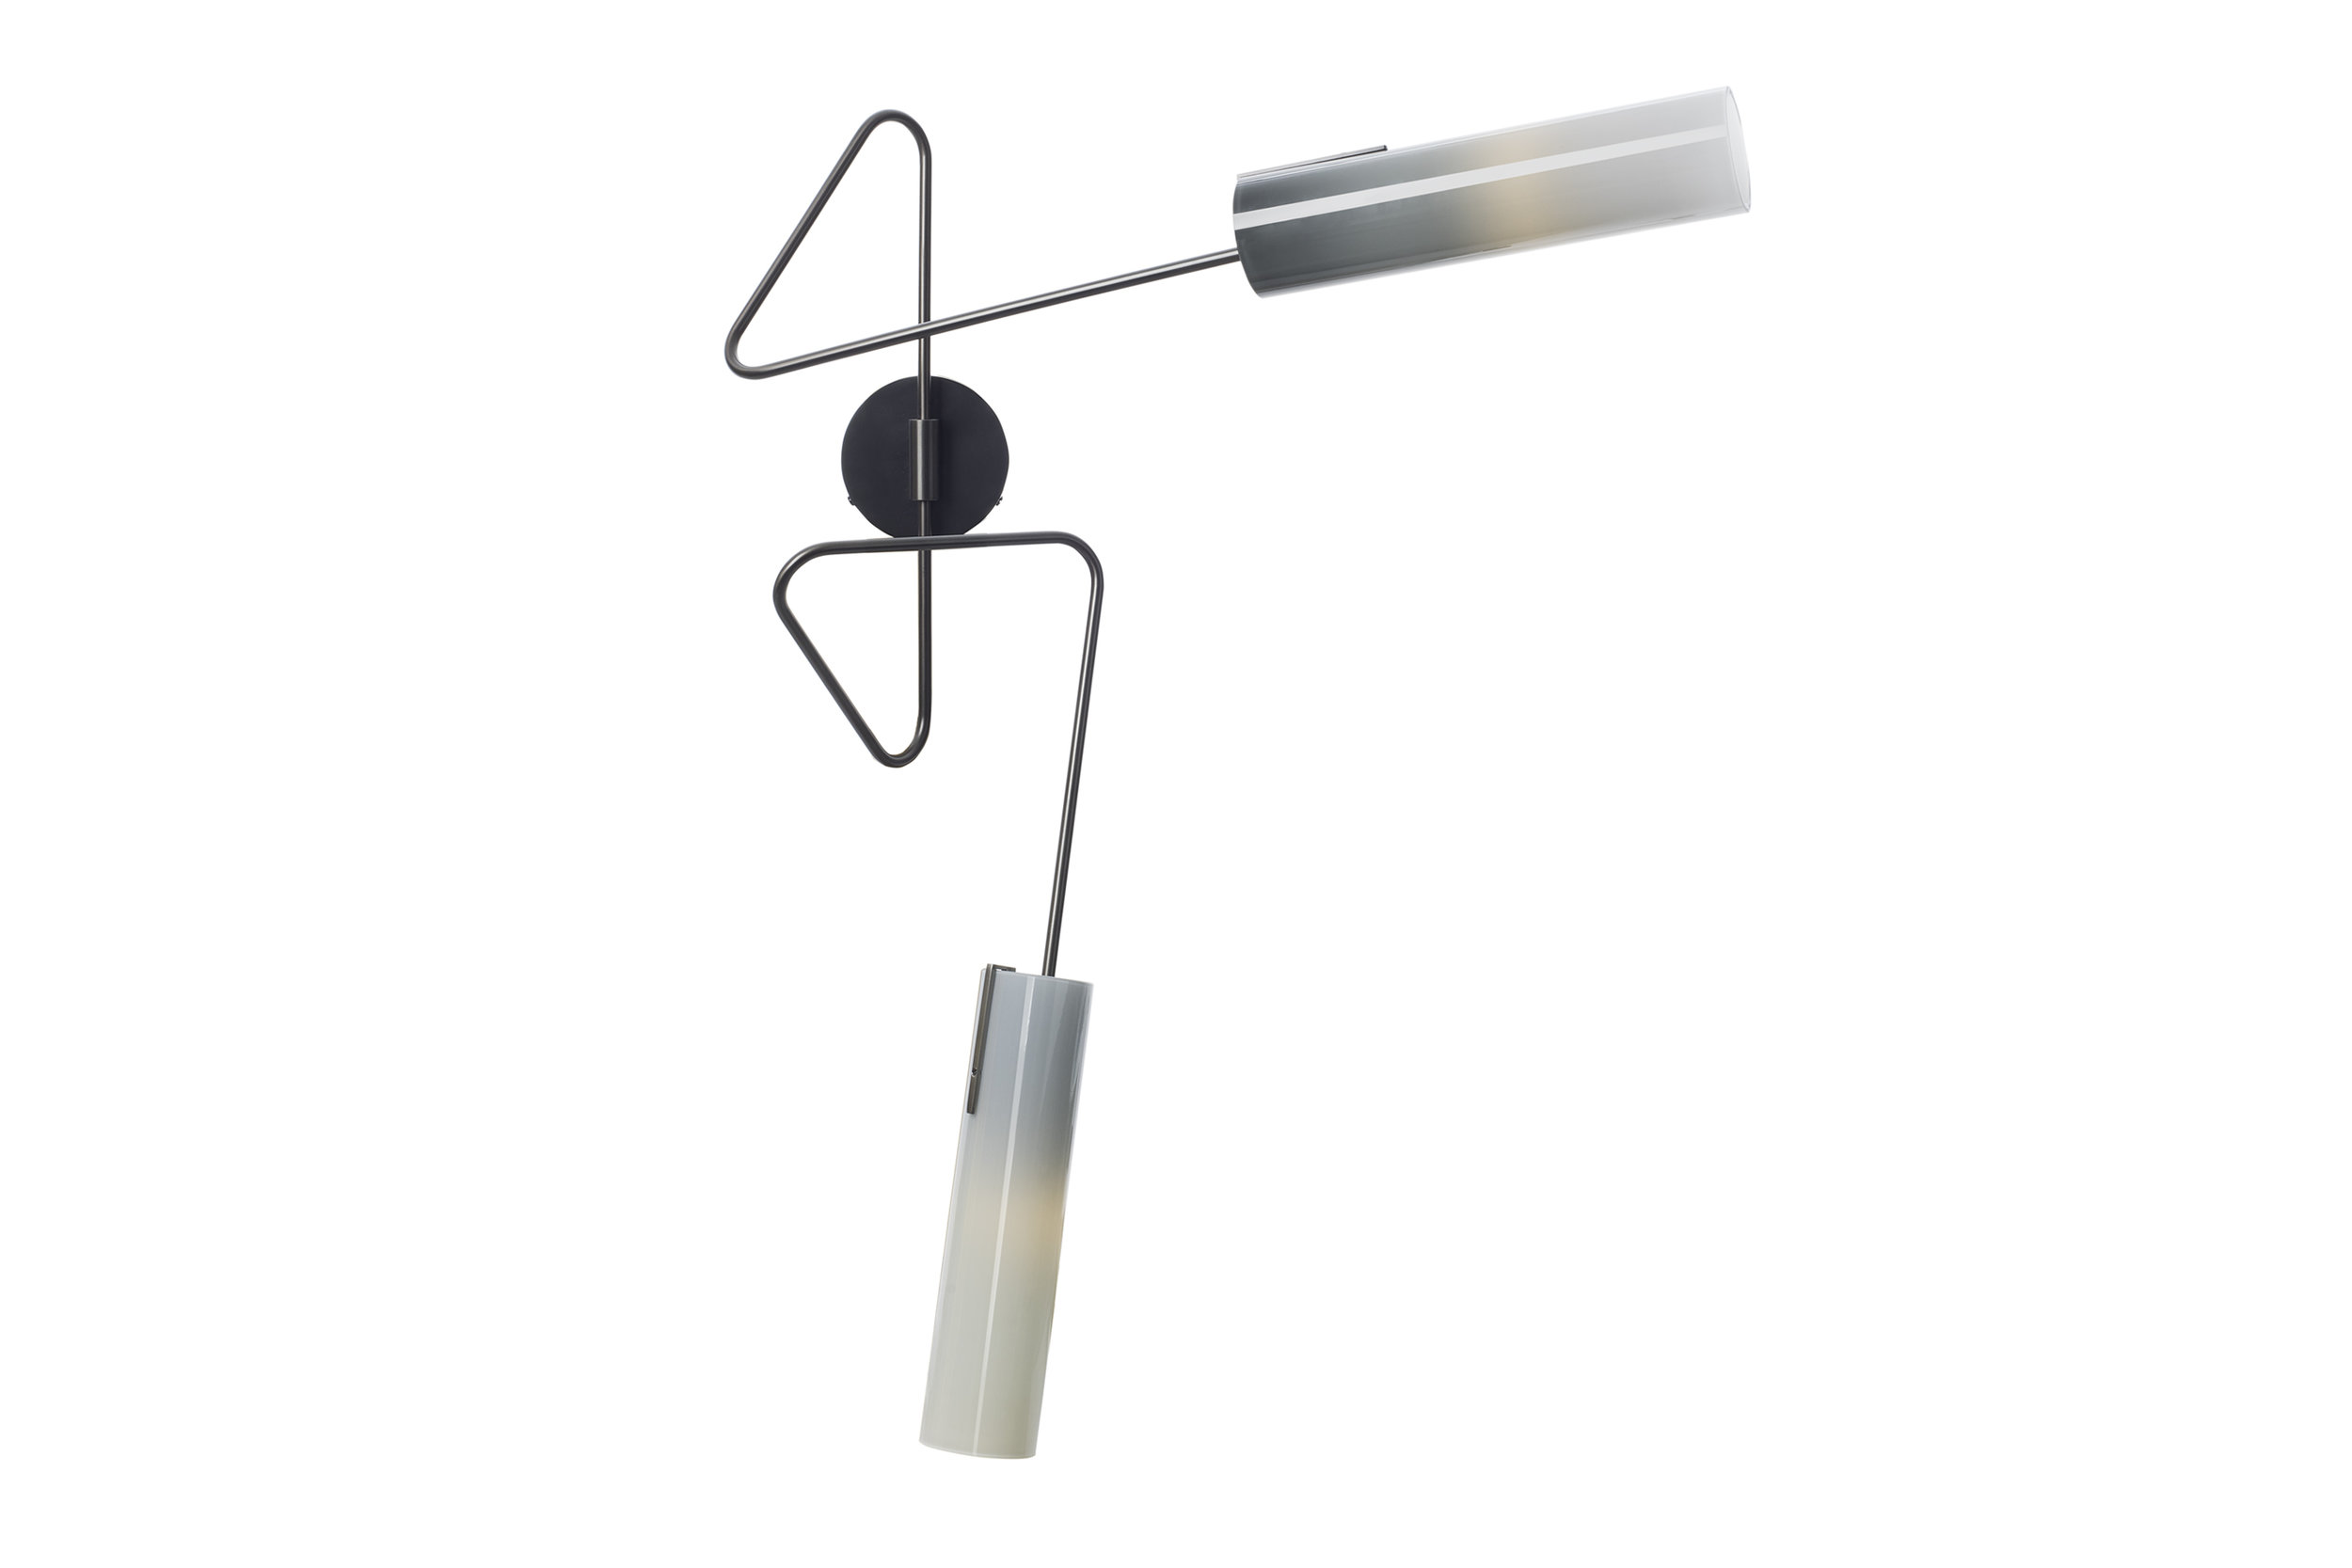 Avram_Rusu_Continuum_Sconce_Model_4_2.jpg